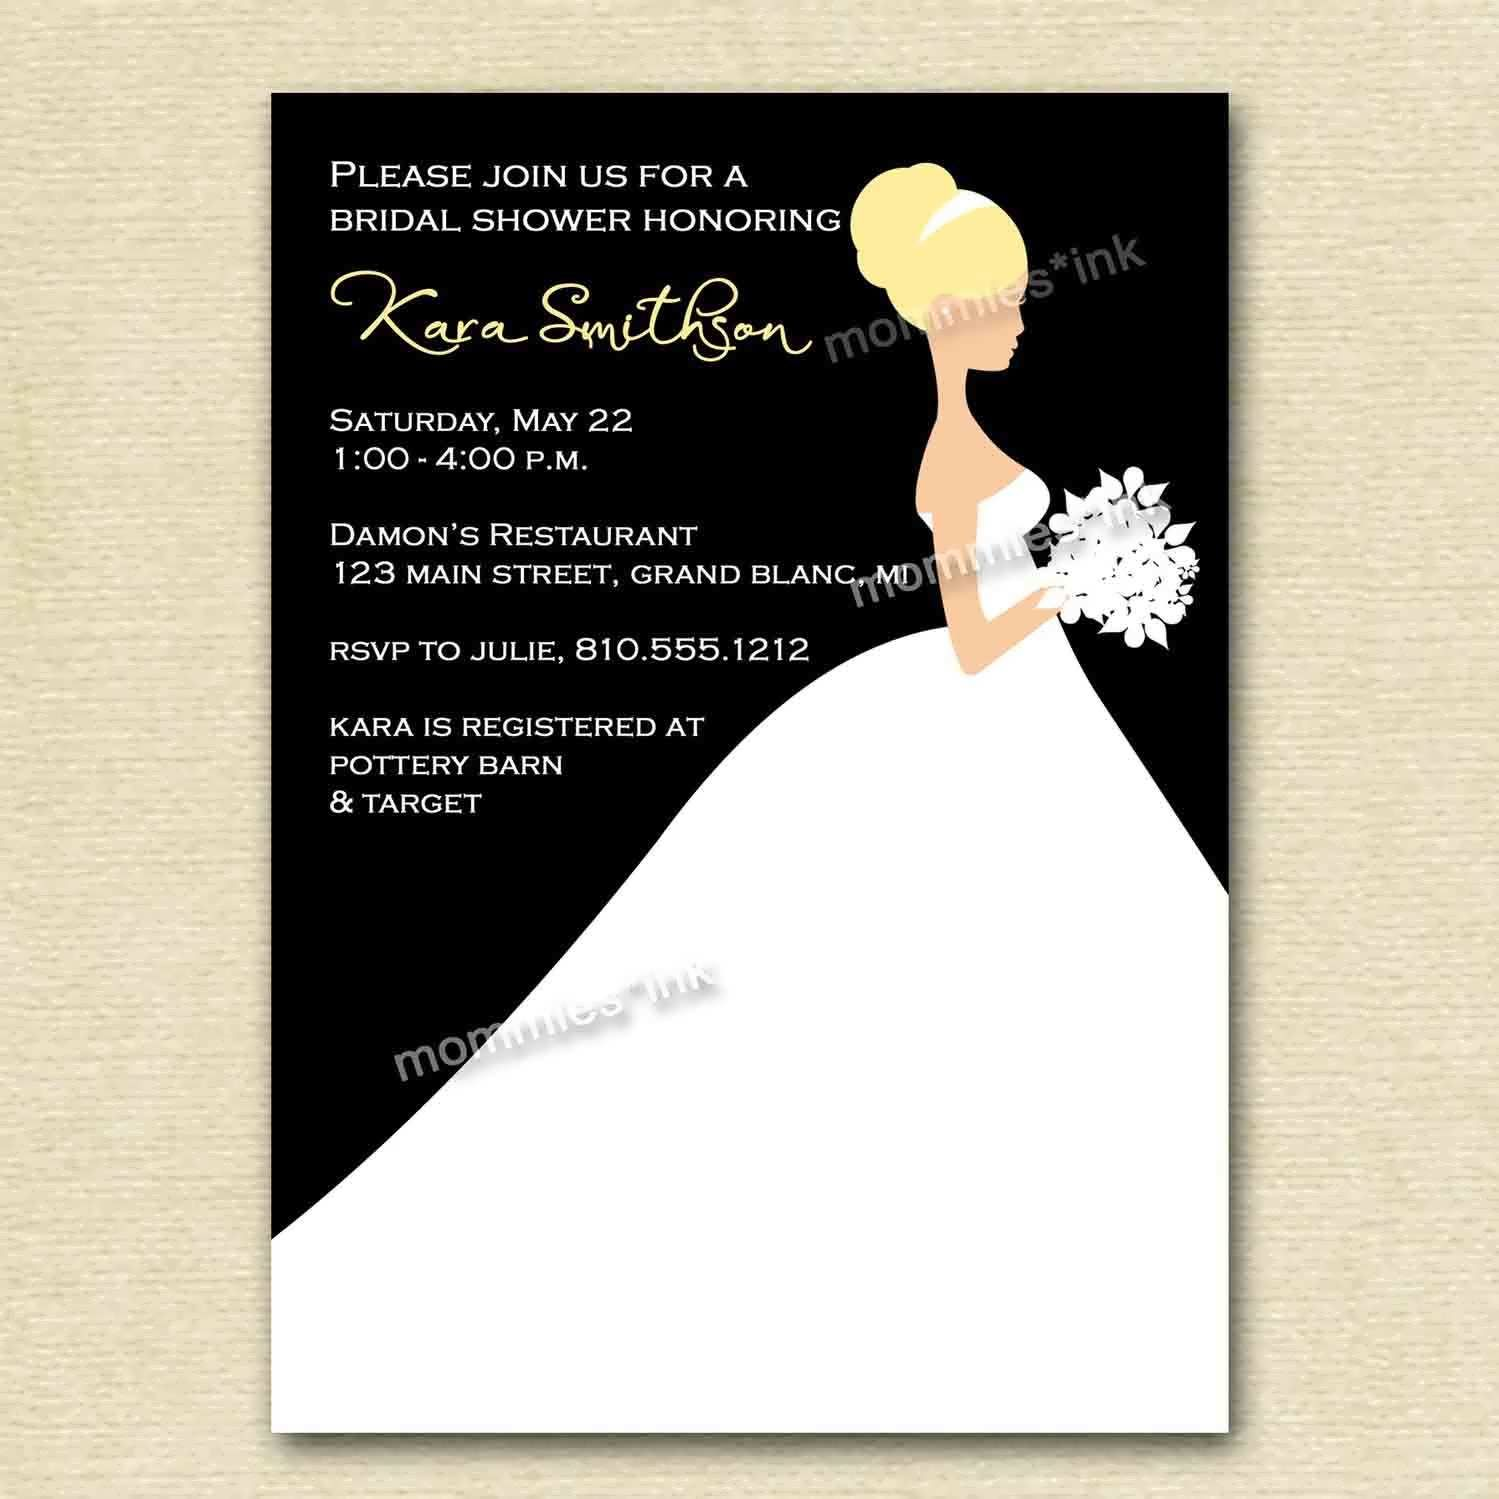 Bridal Shower Invitation Template #bridal #shower #invitation ...